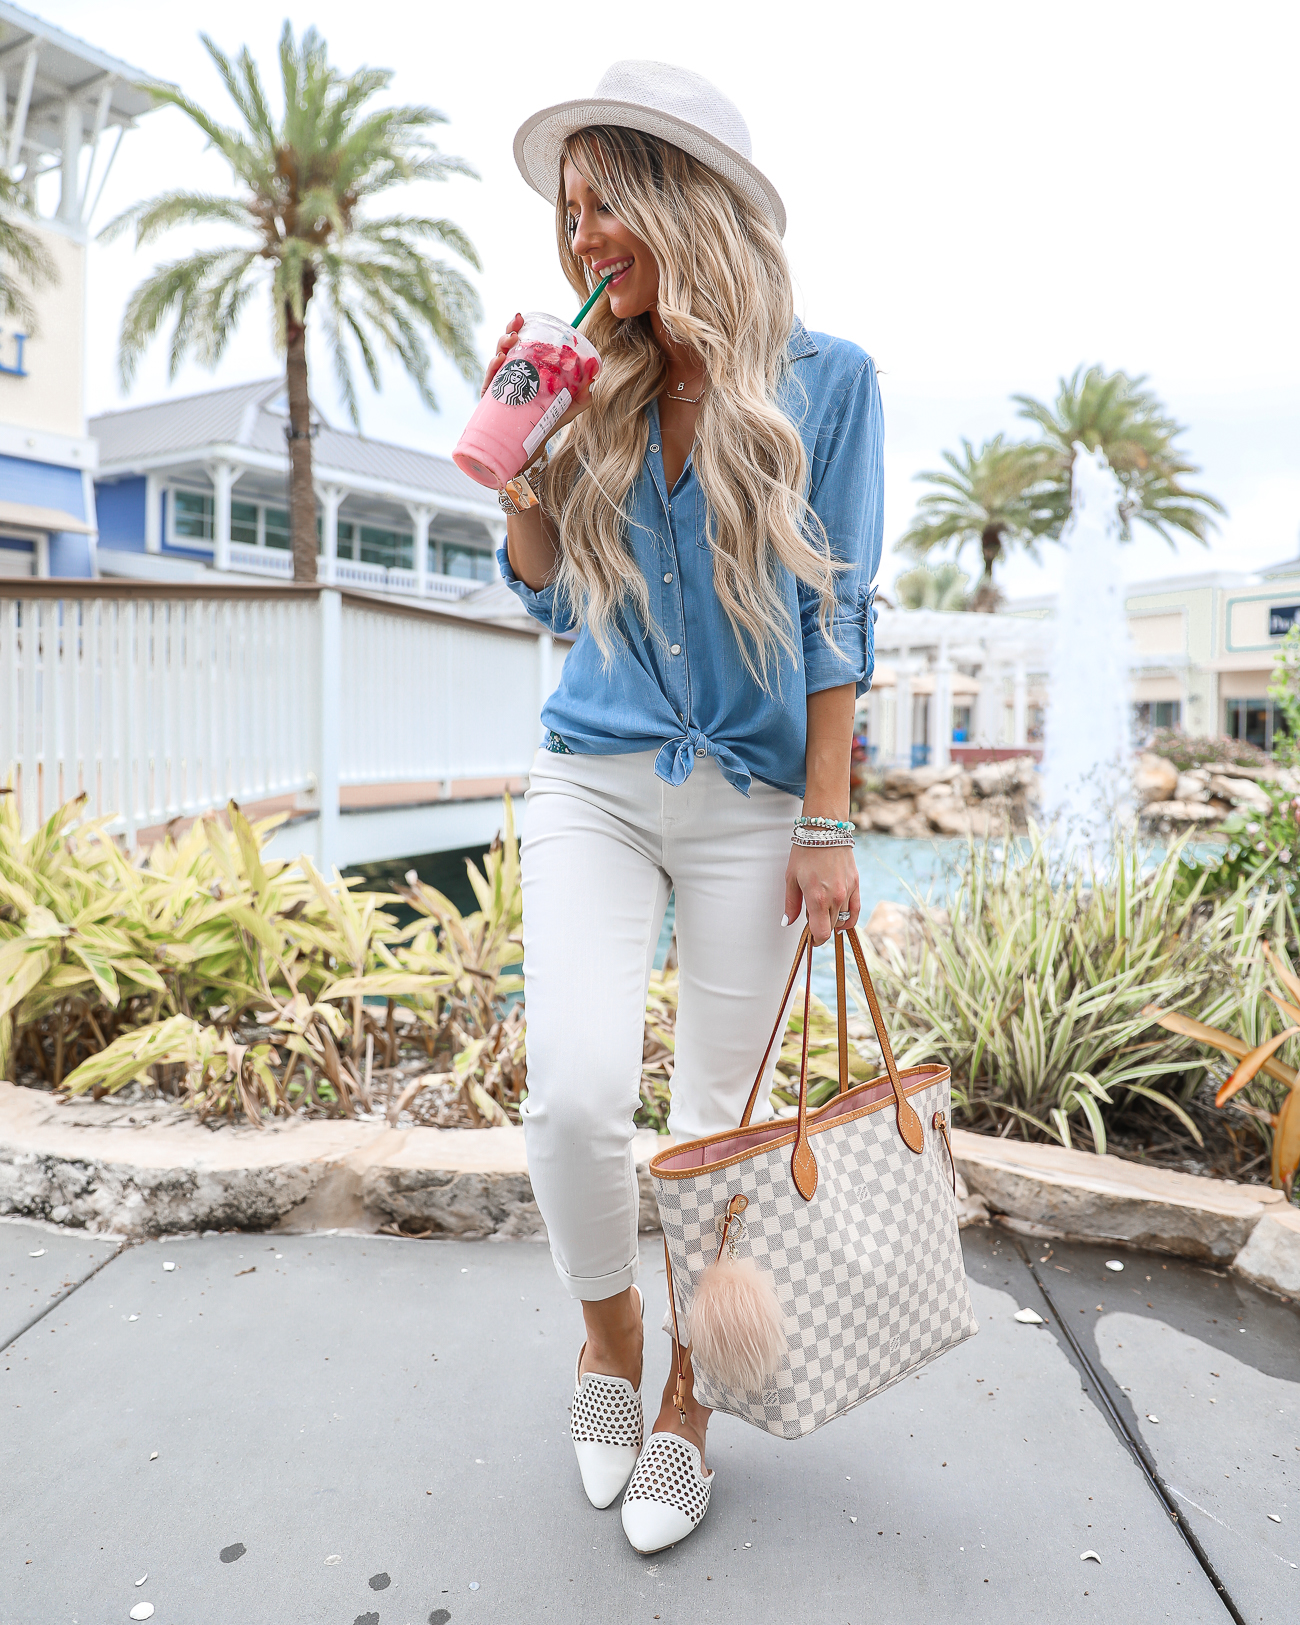 walmart Comfy Casual Florida Outfit White skinny jeans Chambray button up top White mules Louis Vuitton Neverfull MM Starbucks Pink Drink Laura Beverlin-10